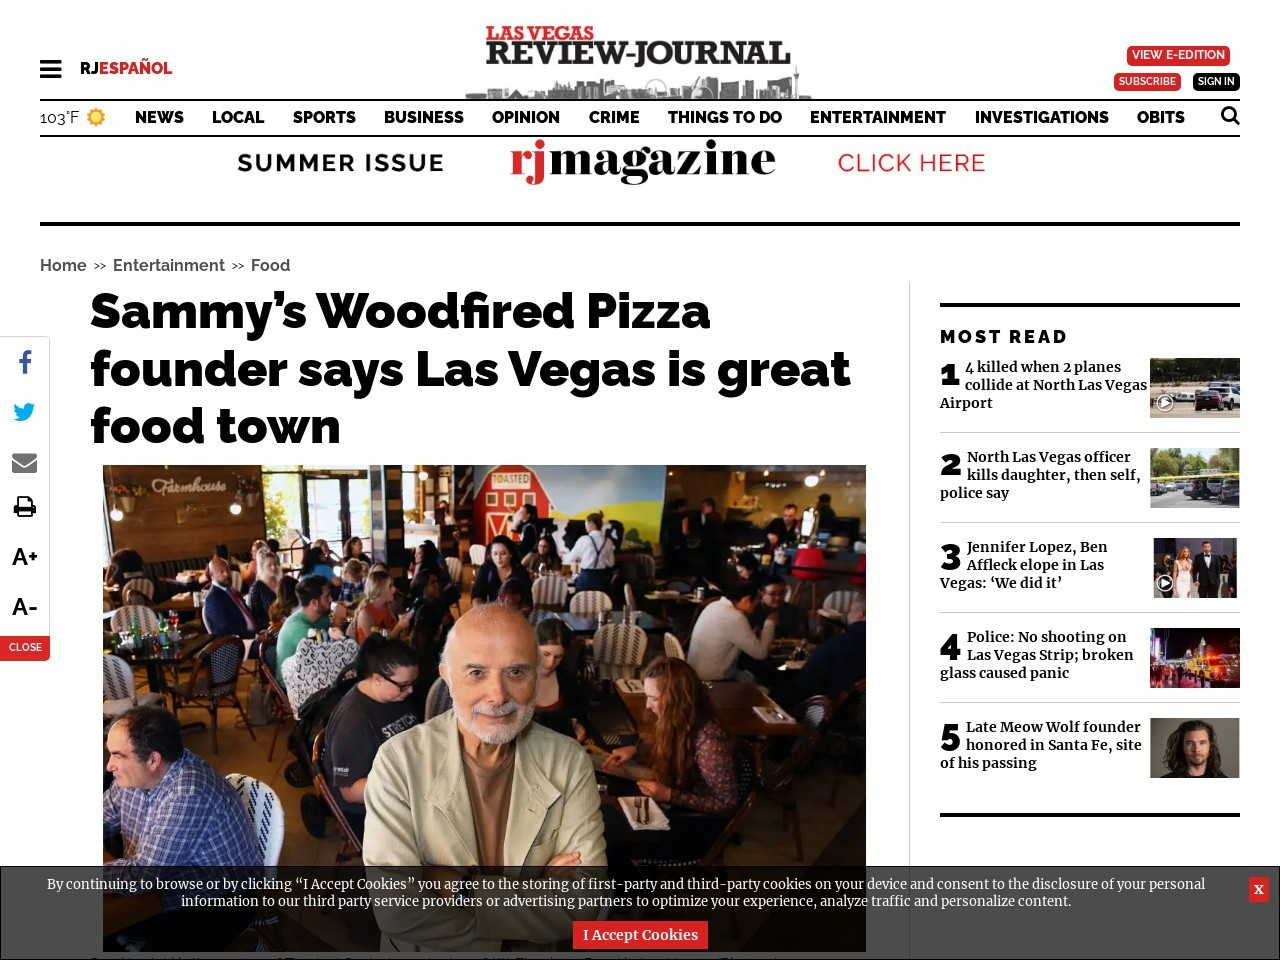 Sammy's Woodfired Pizza founder says Las Vegas is great food town